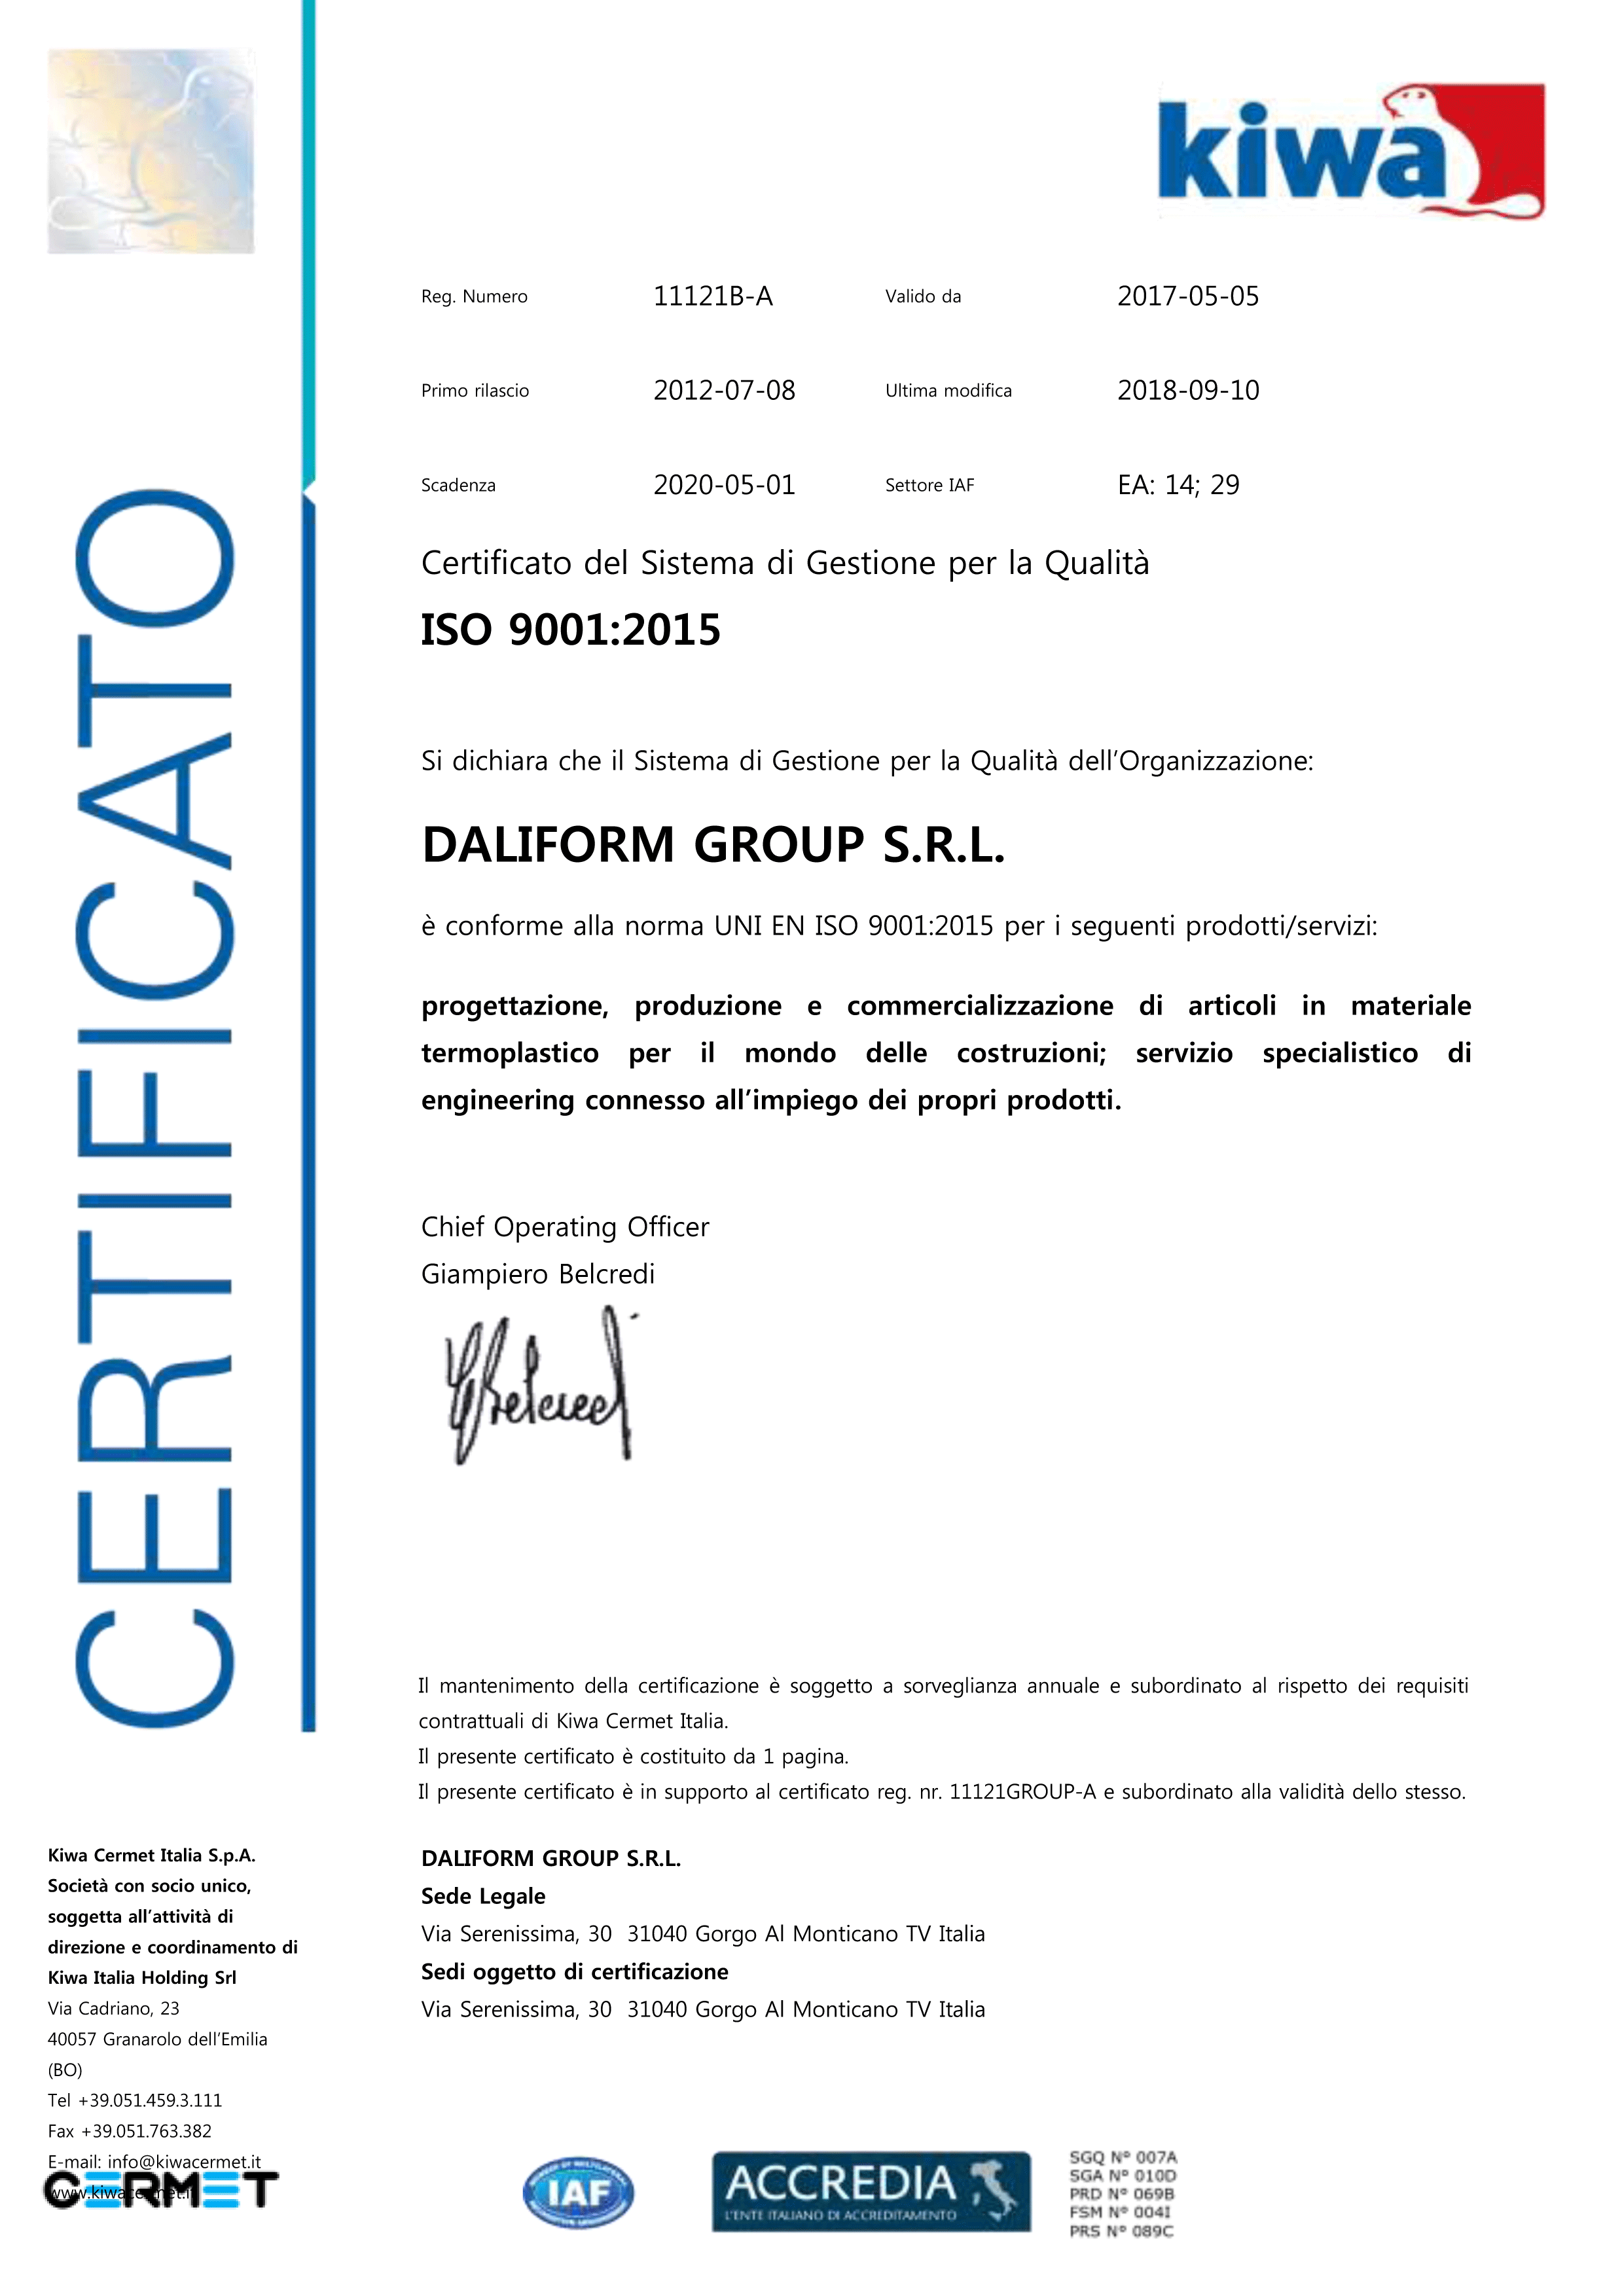 DG-Certificato9001-it